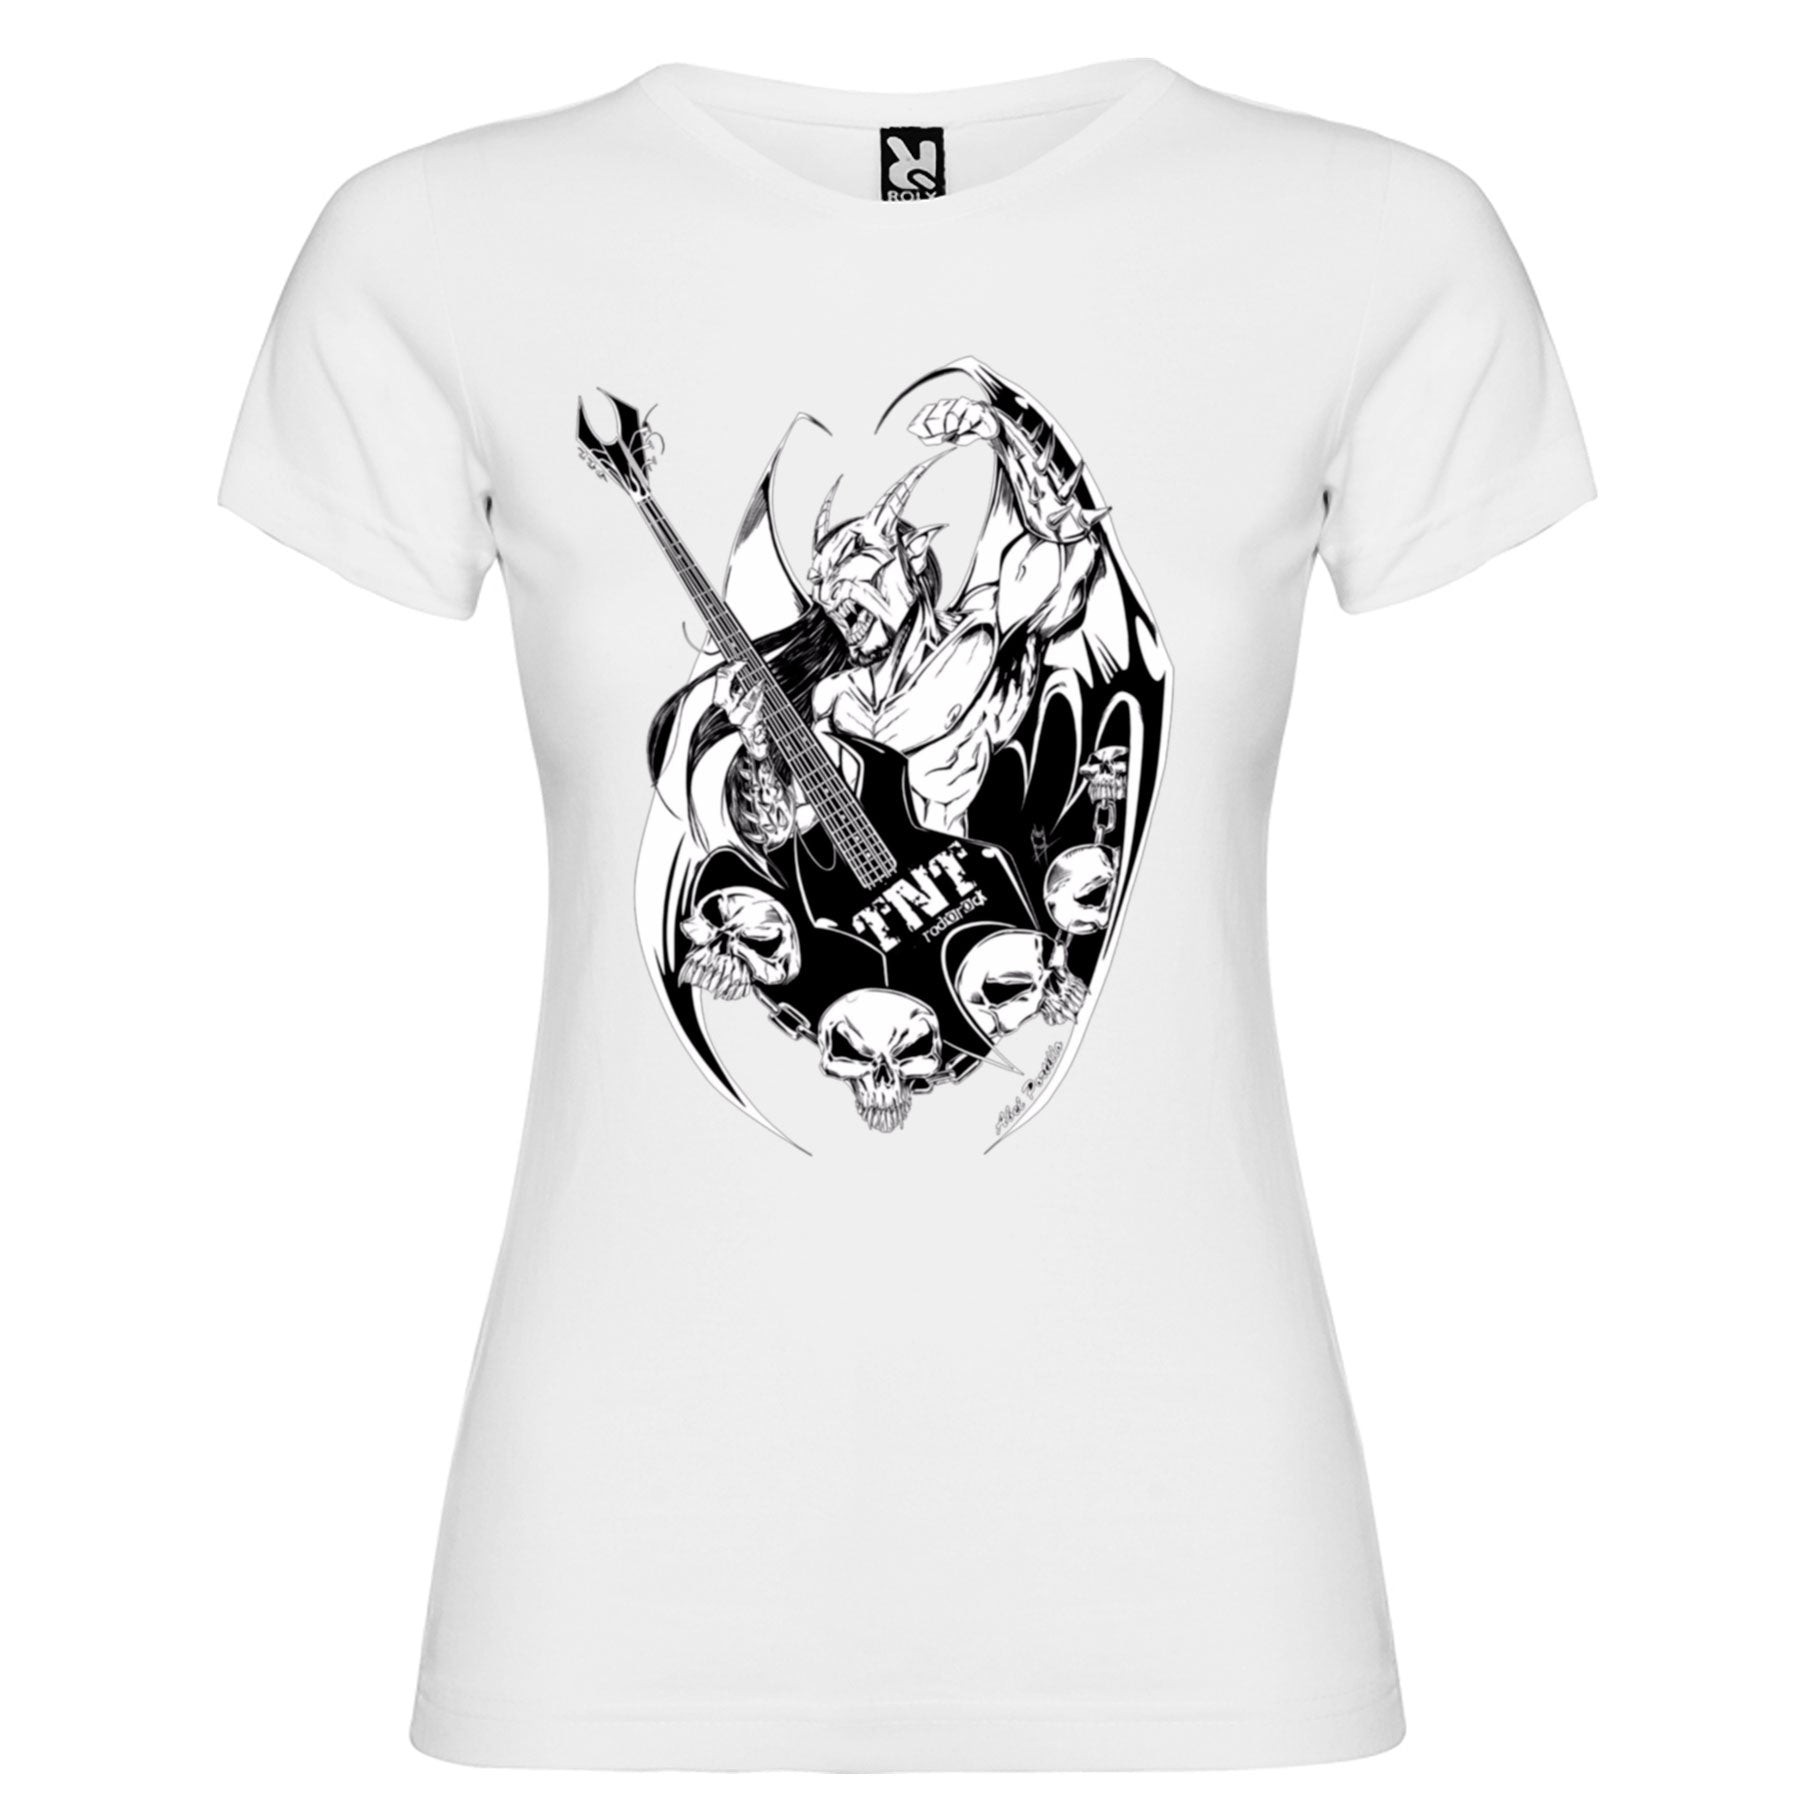 TNT Radio Rock - Camiseta Demon Chica - Merchanfy Imprime tus camisetas